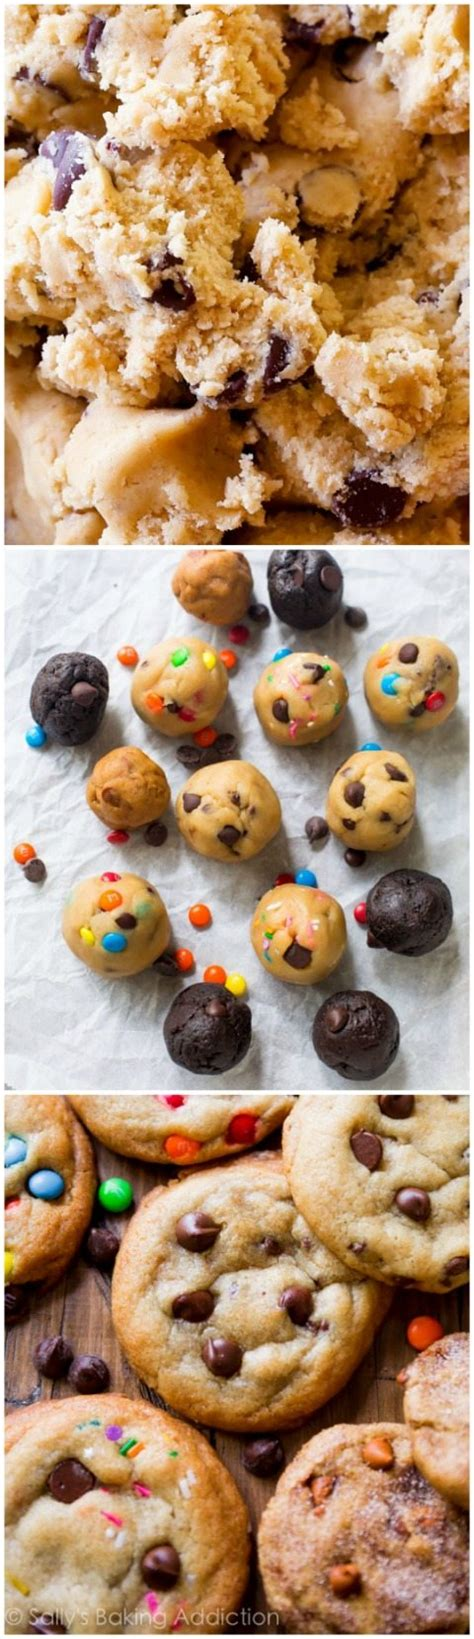 Decorated christmas tree cookies recipe. How to Freeze Cookie Dough - Sallys Baking Addiction